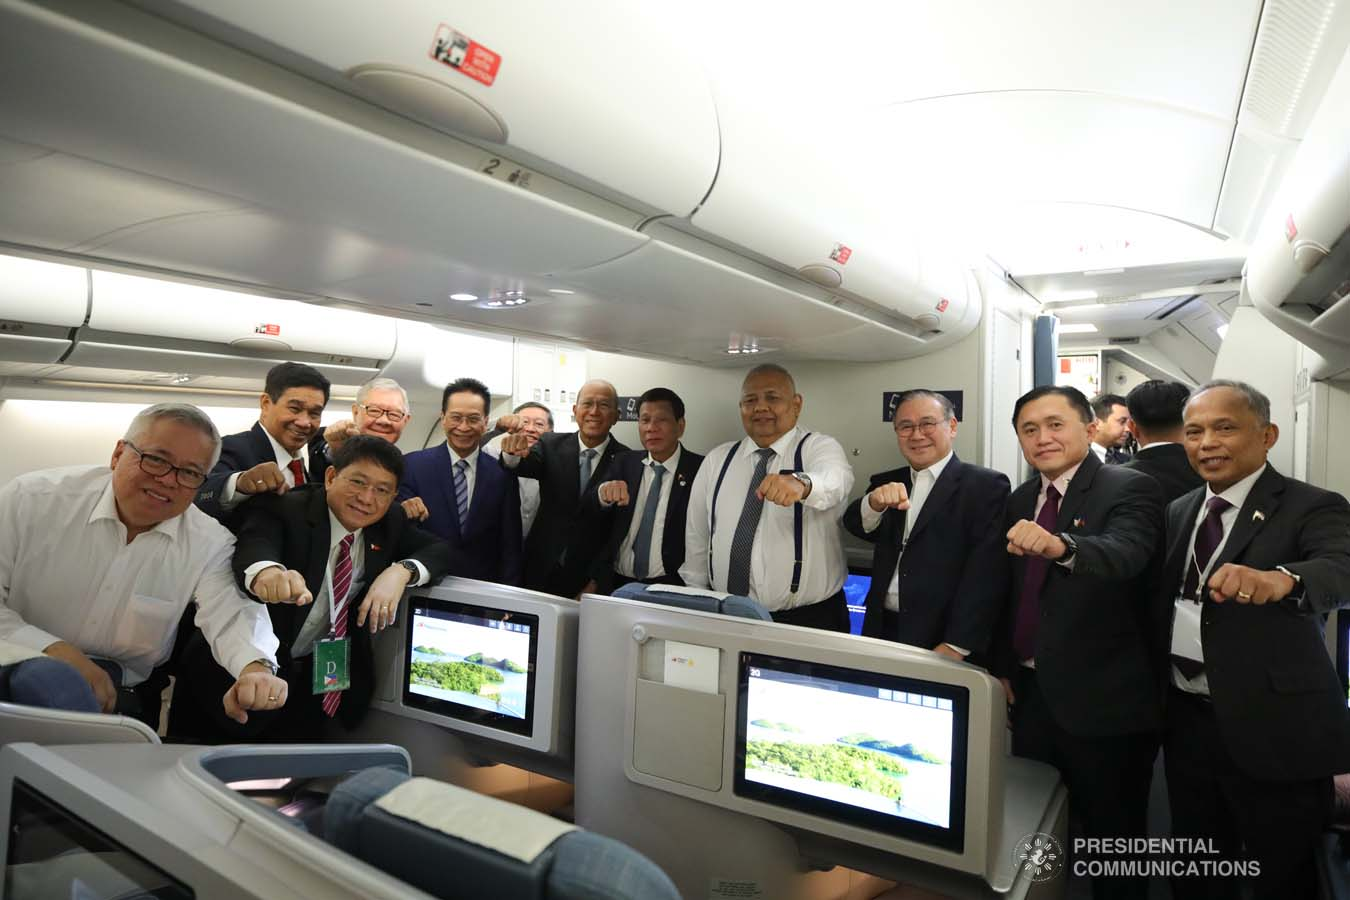 President Rodrigo Roa Duterte strikes his signature pose with the members of his delegation while on board a plane back to Moscow, Russia following his successful engagements in Sochi on October 3, 2019. KING RODRIGUEZ/PRESIDENTIAL PHOTO